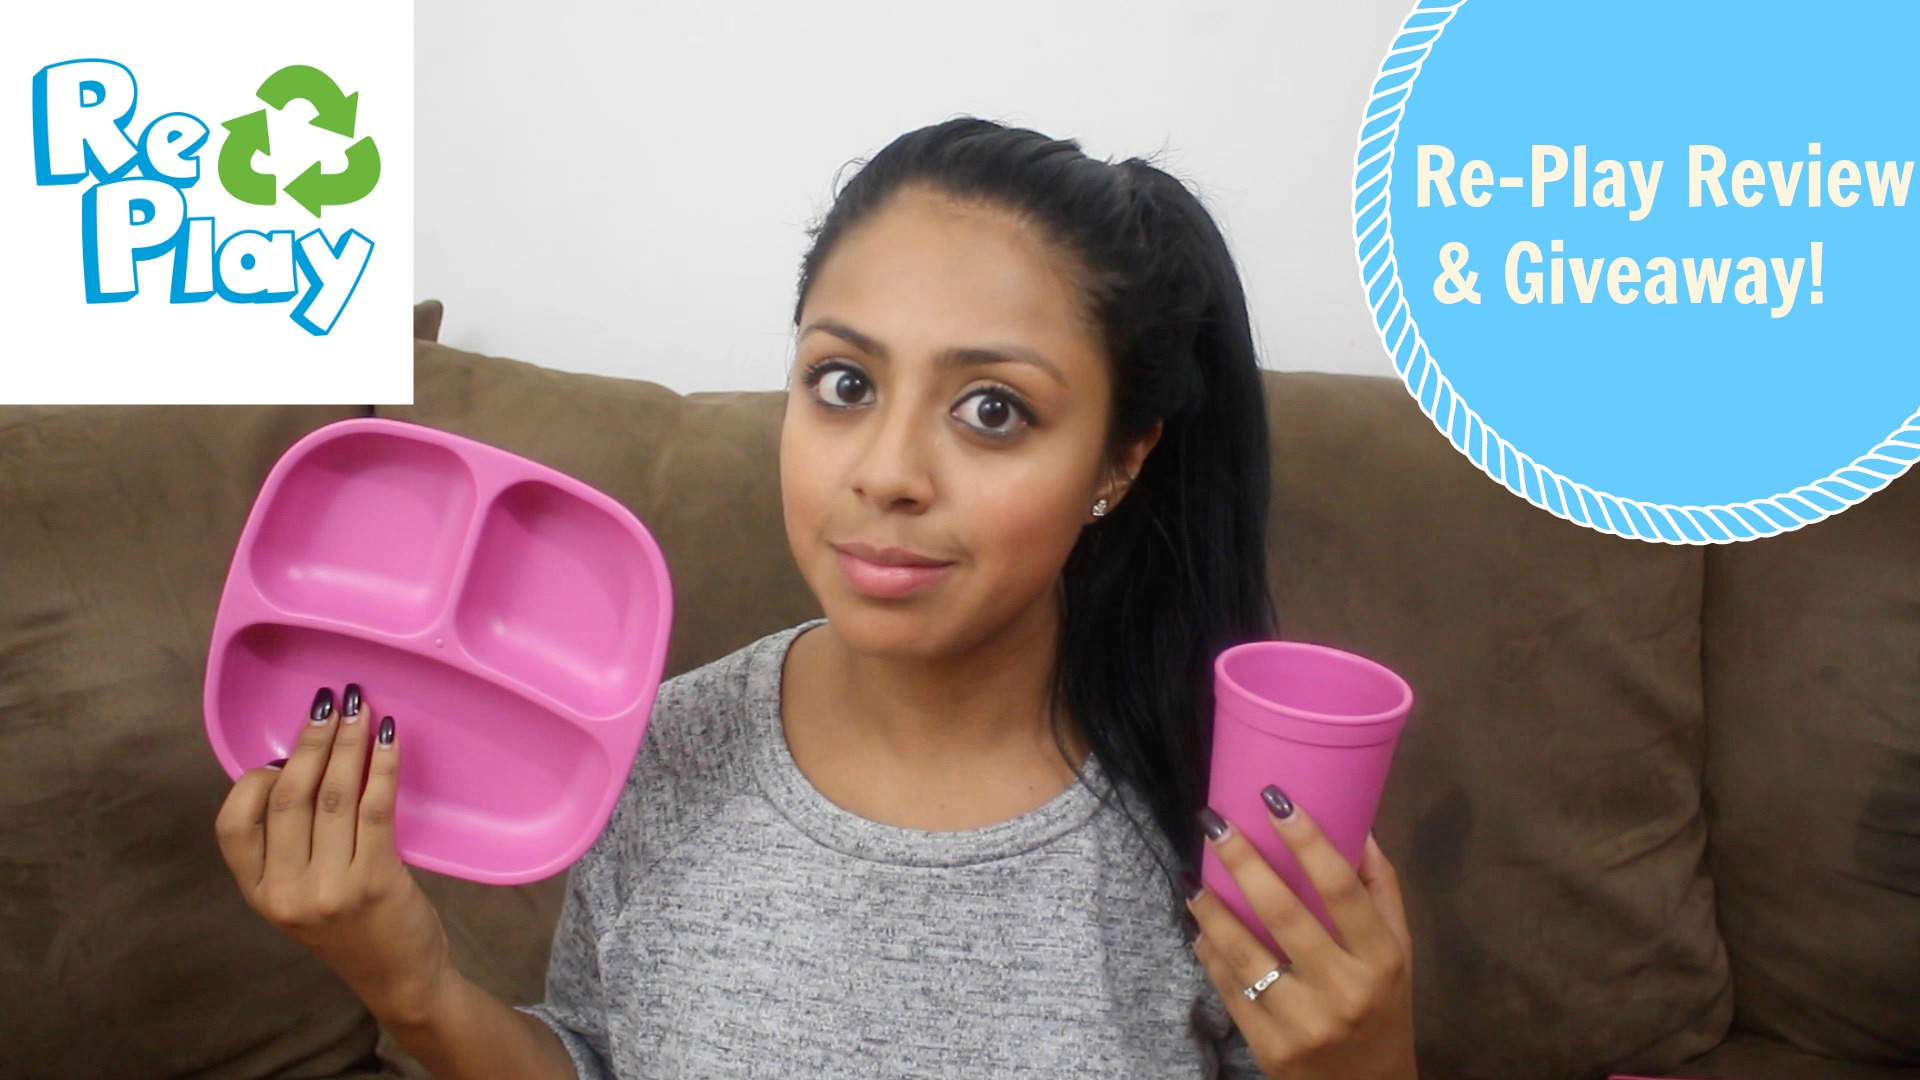 Re-Play Feeding Set Review & Giveaway!